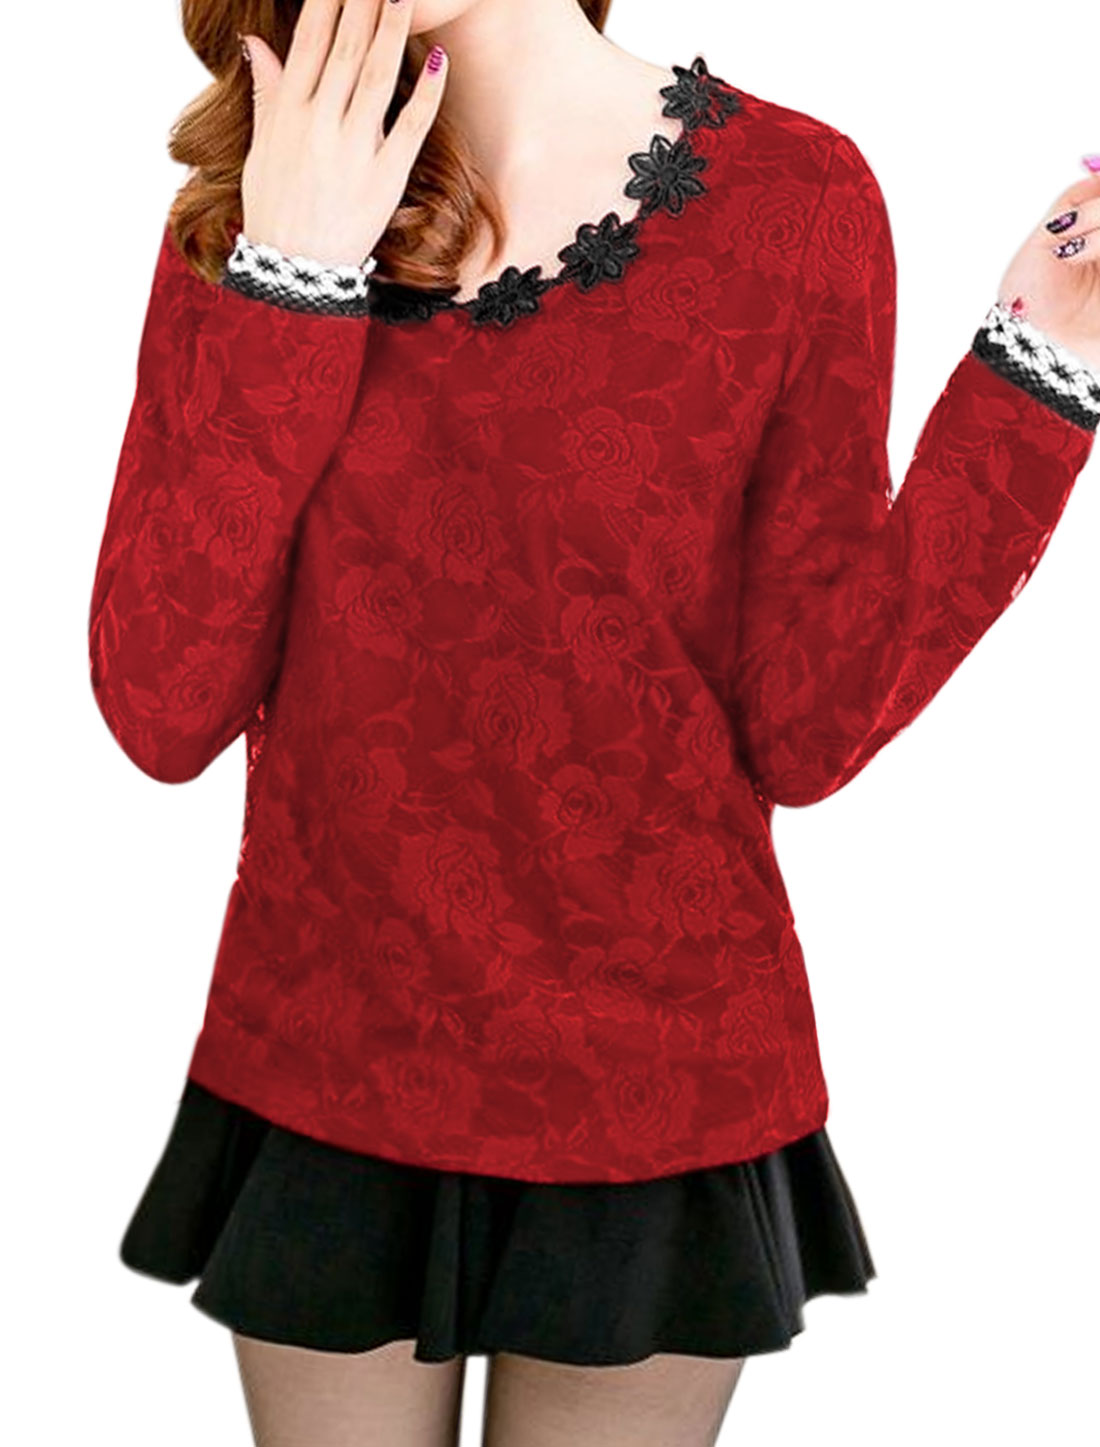 Women Round Neck Long Sleeves Crochet Panel Slim Fit Lace Shirt Red M